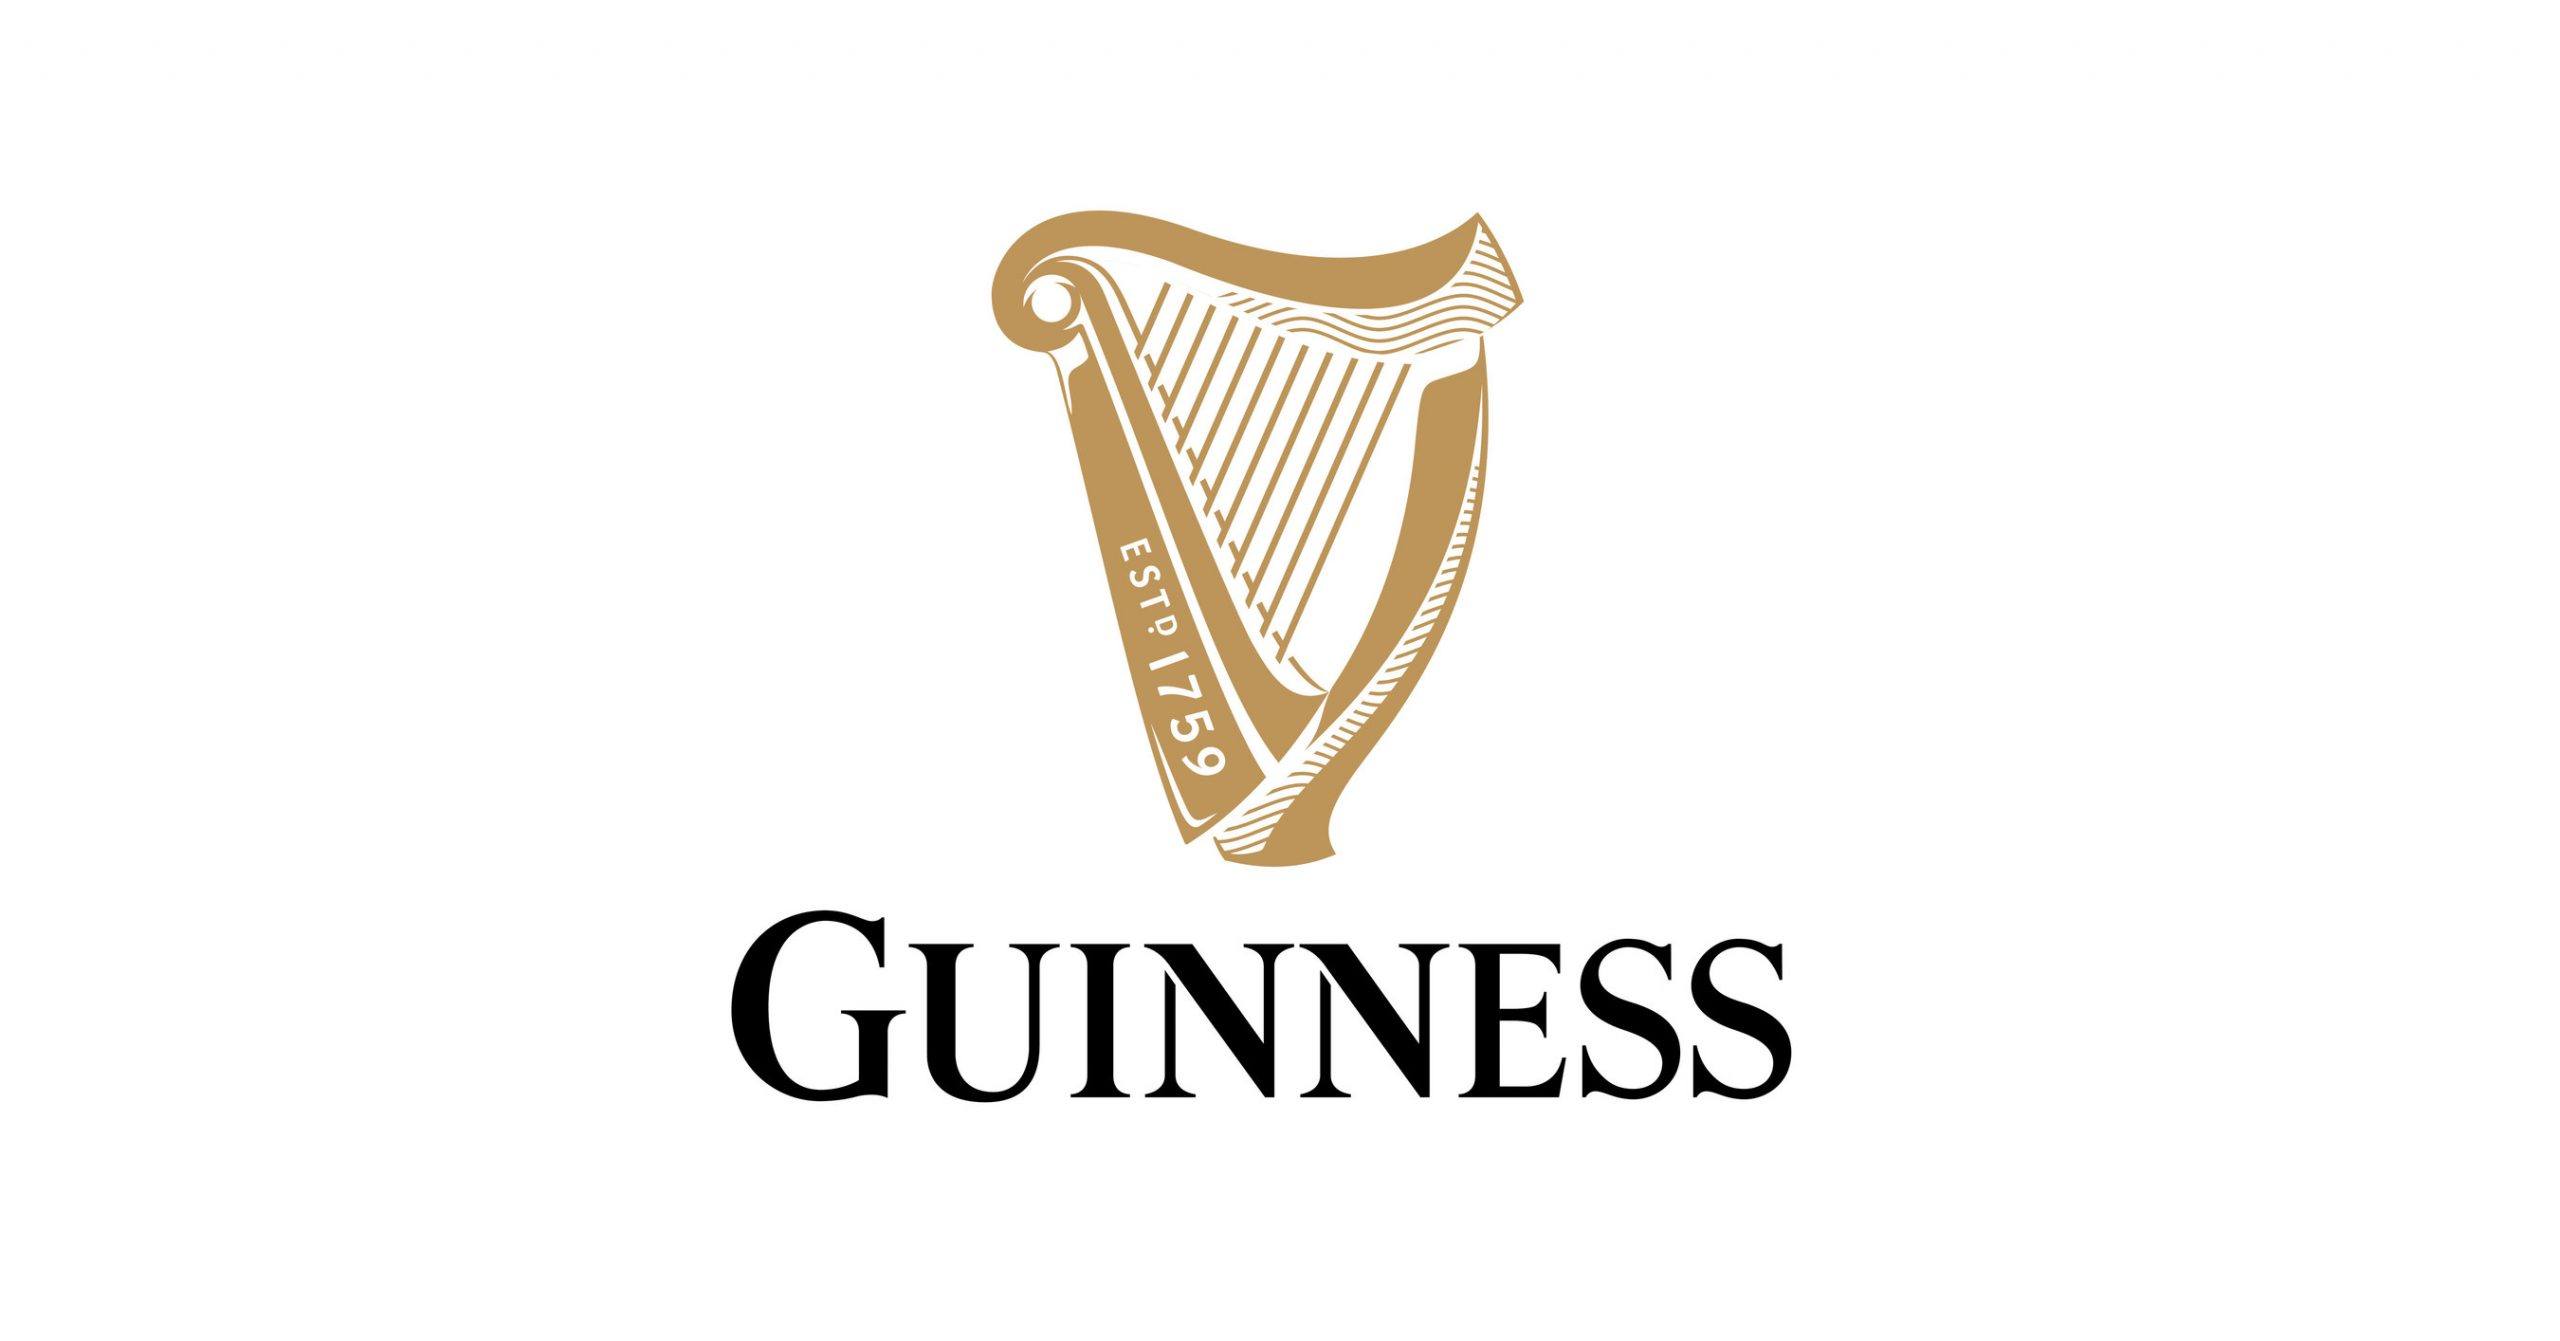 This St. Patrick's Day, Guinness Is Raising #atoastto Frontline Heroes, Pubs Across The Country And The Communities They Serve photo